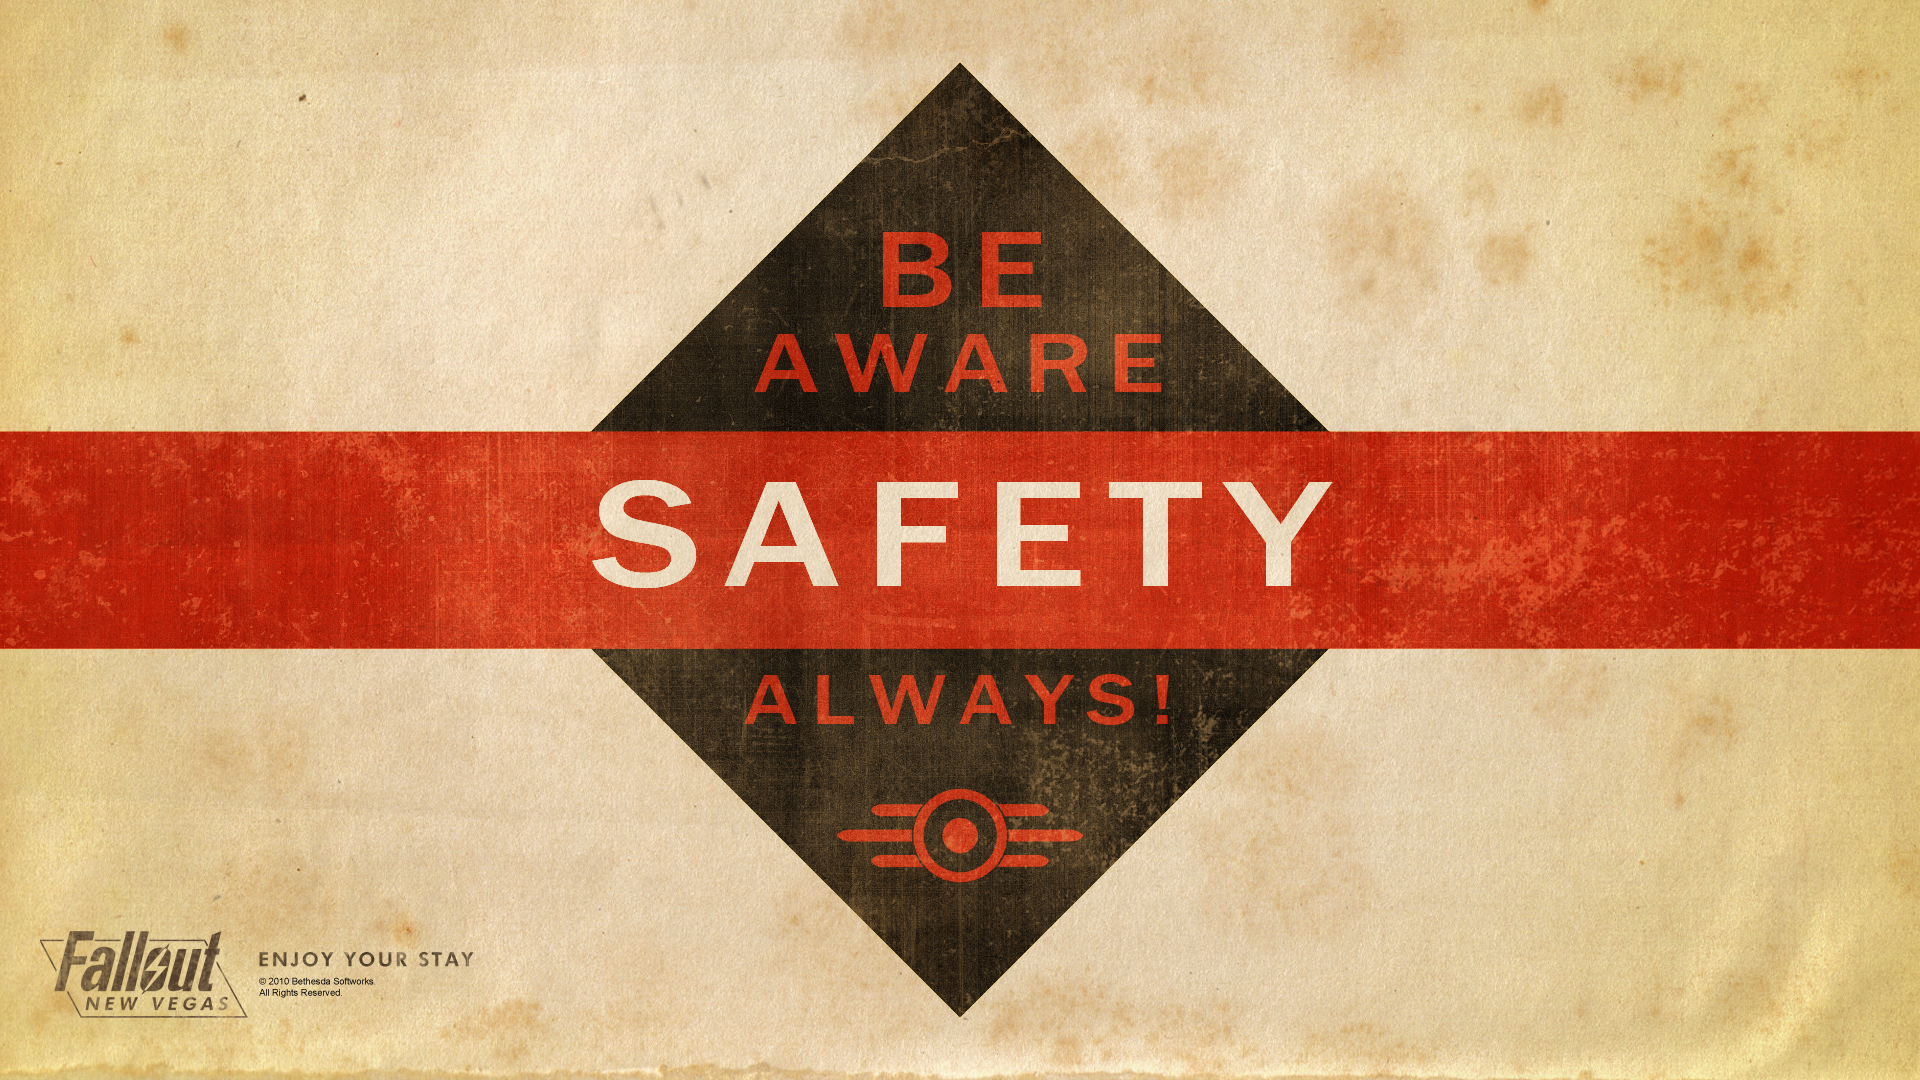 Fallout Safety wallpaper background 1920x1080